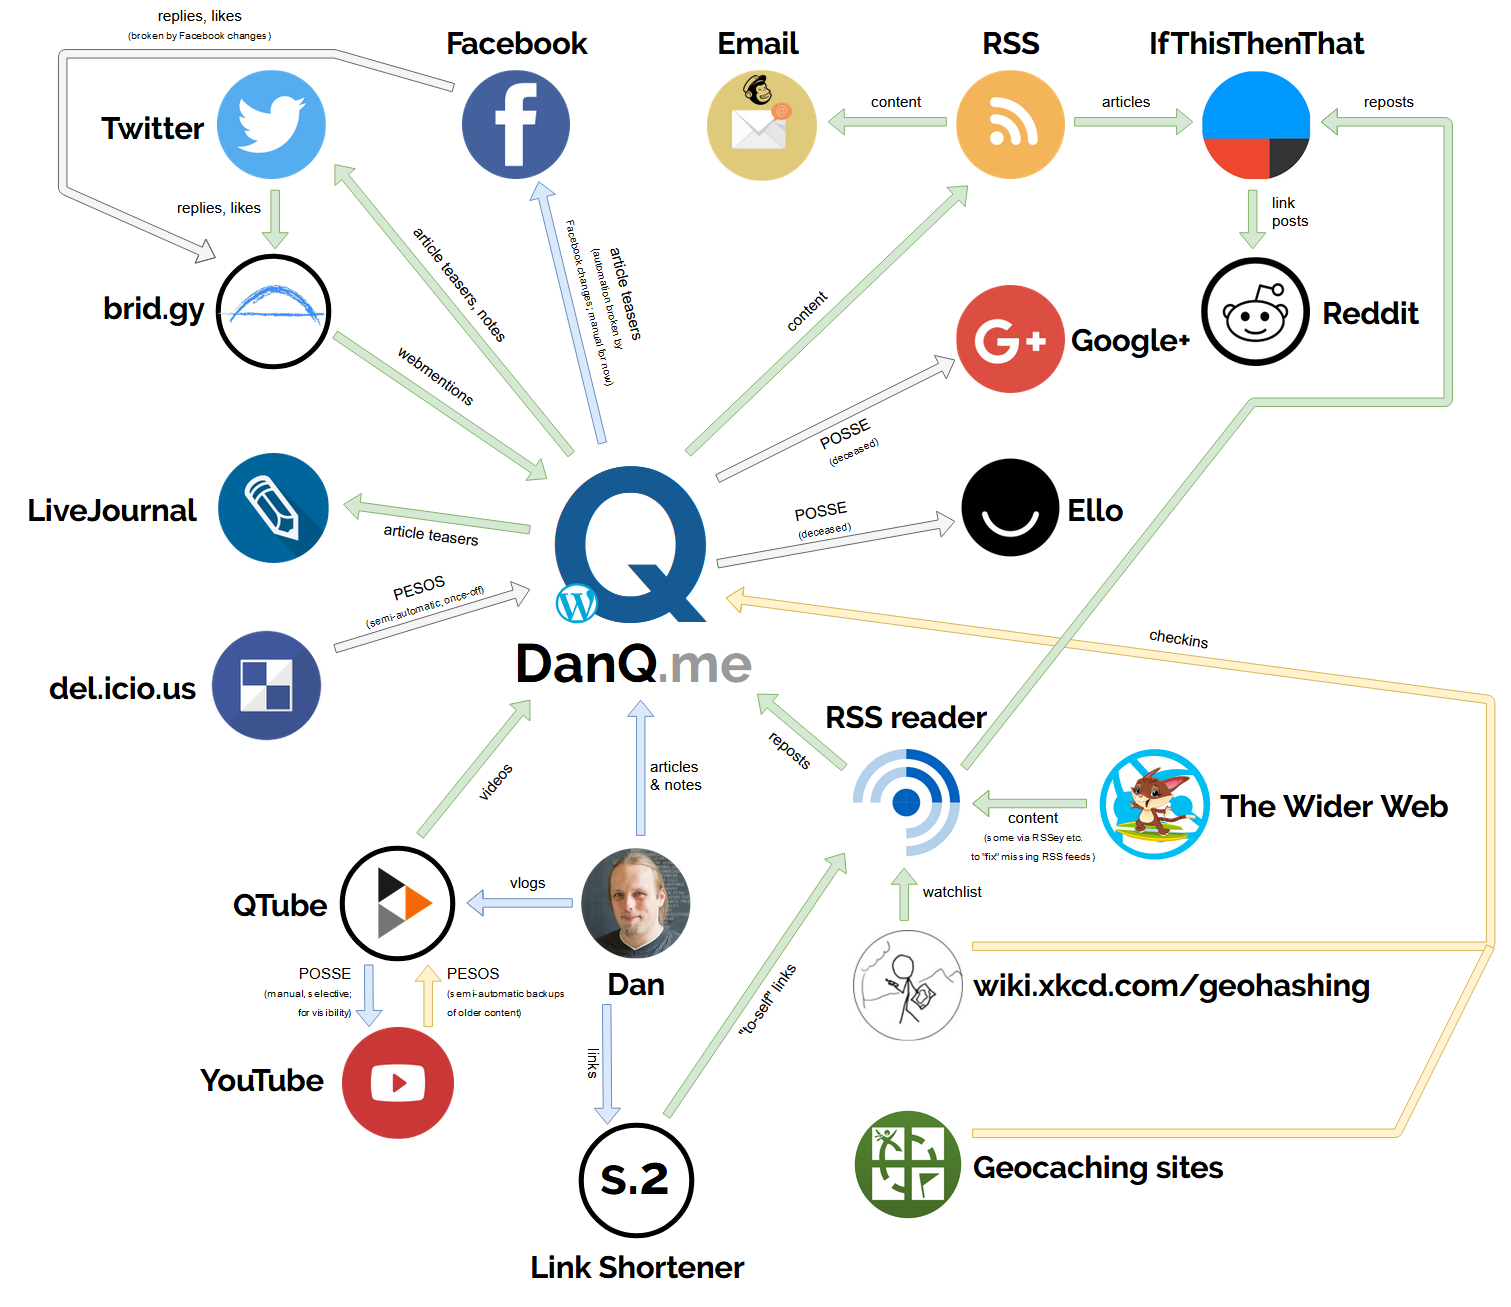 Diagram illustrating the relationships between DanQ.me and the satellite services with which it interacts.